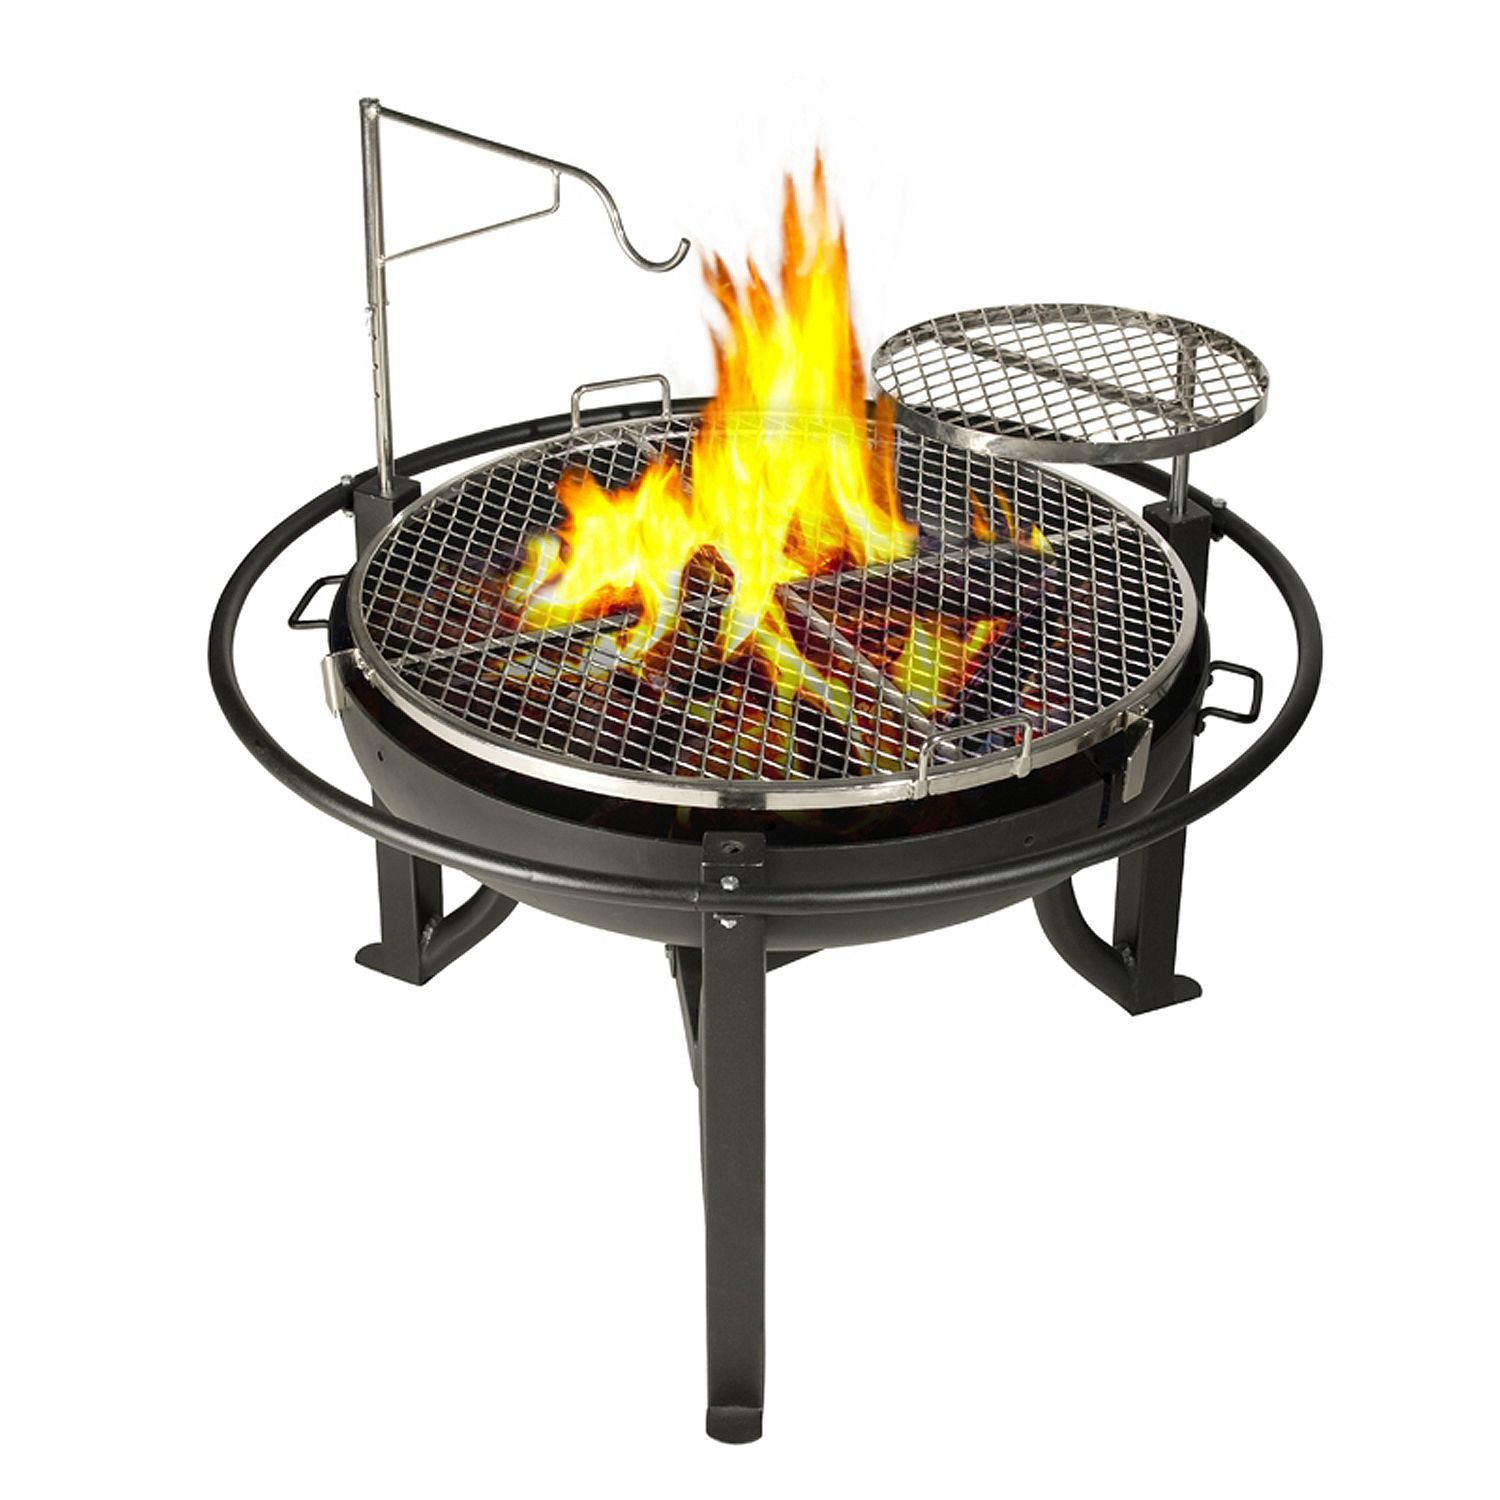 Cowboy Grills Open Pit Grill Sam S Club Fire Pit Grill Cowboy